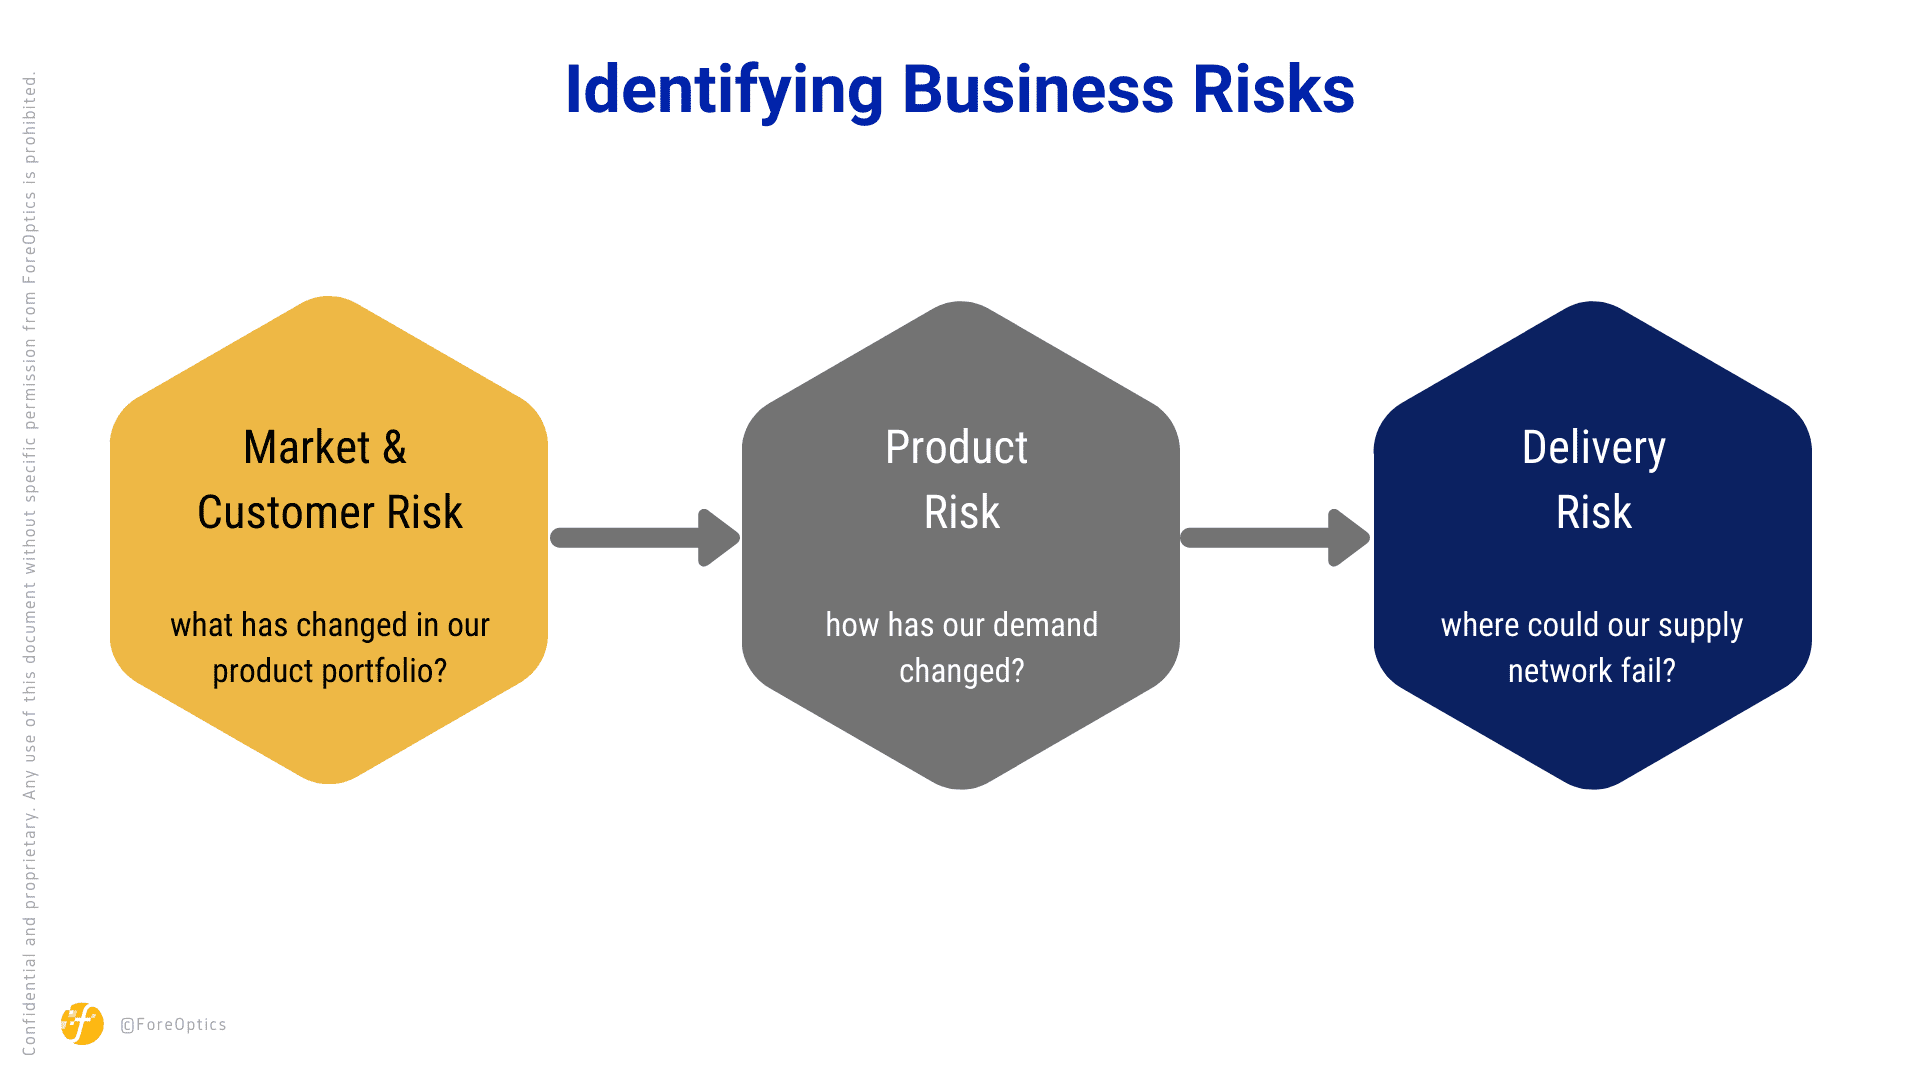 Identifying Business Risks